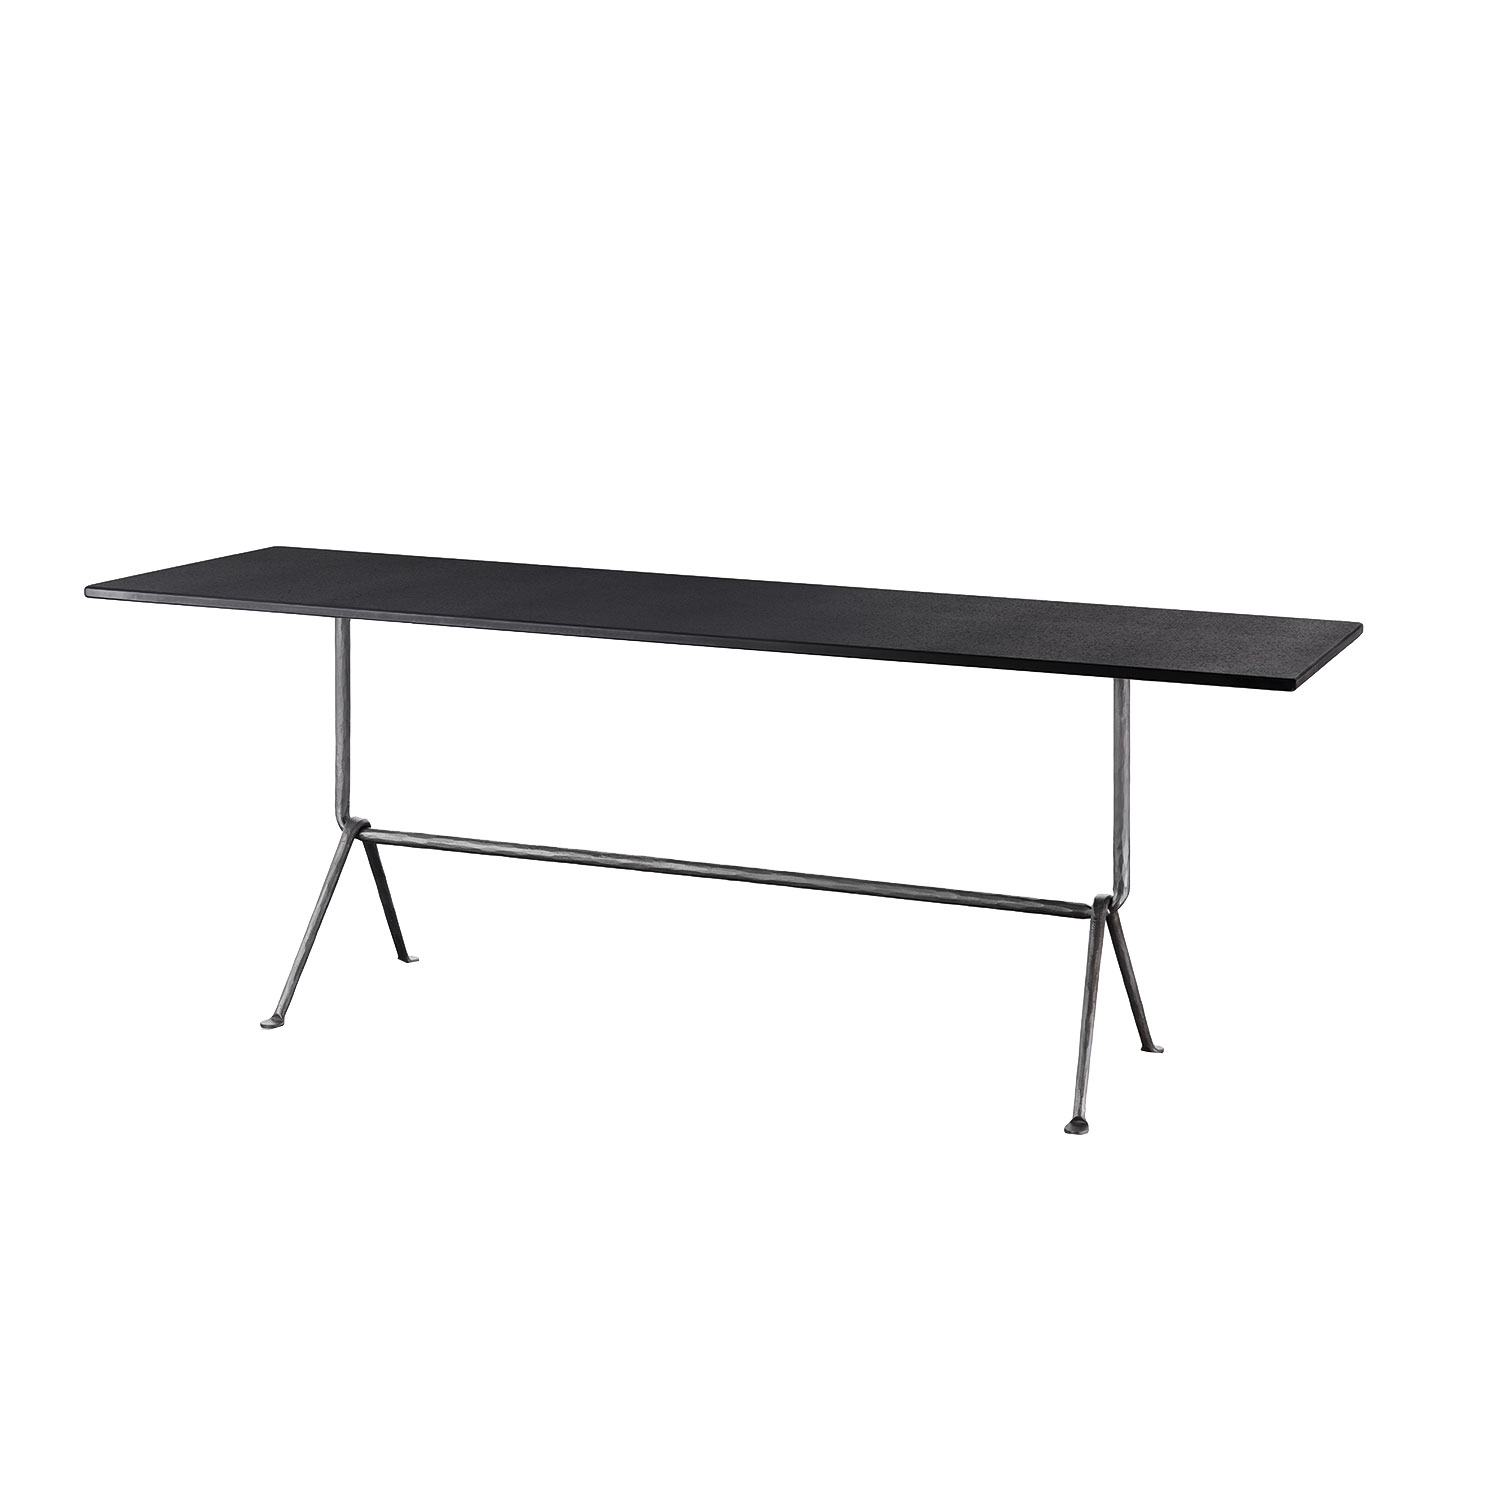 Officina fratino table 160x65, skiffer